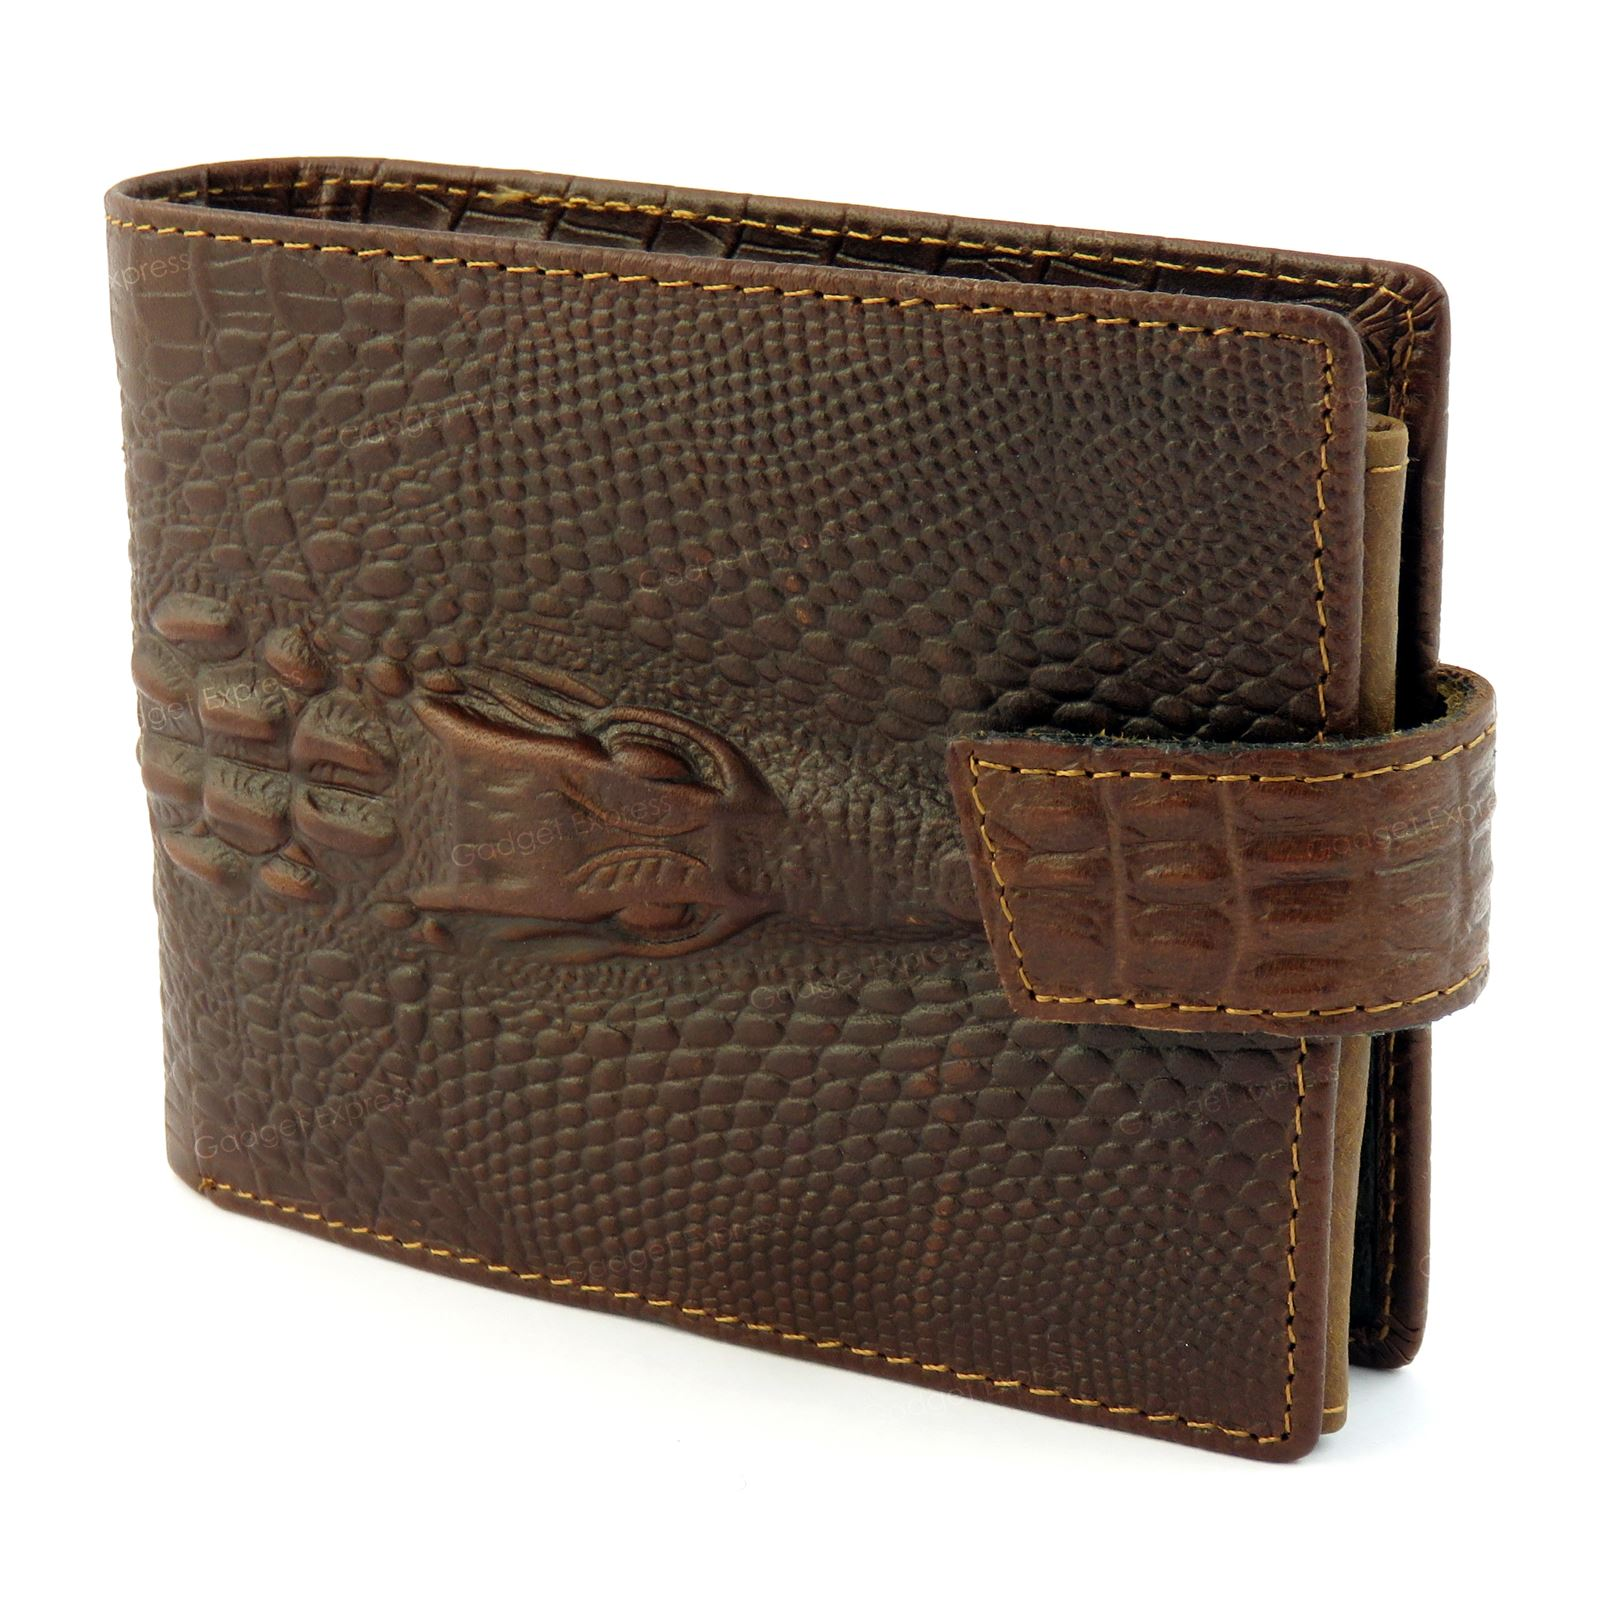 mens dragon luxury quality leather wallet credit card holder purse brown new uk